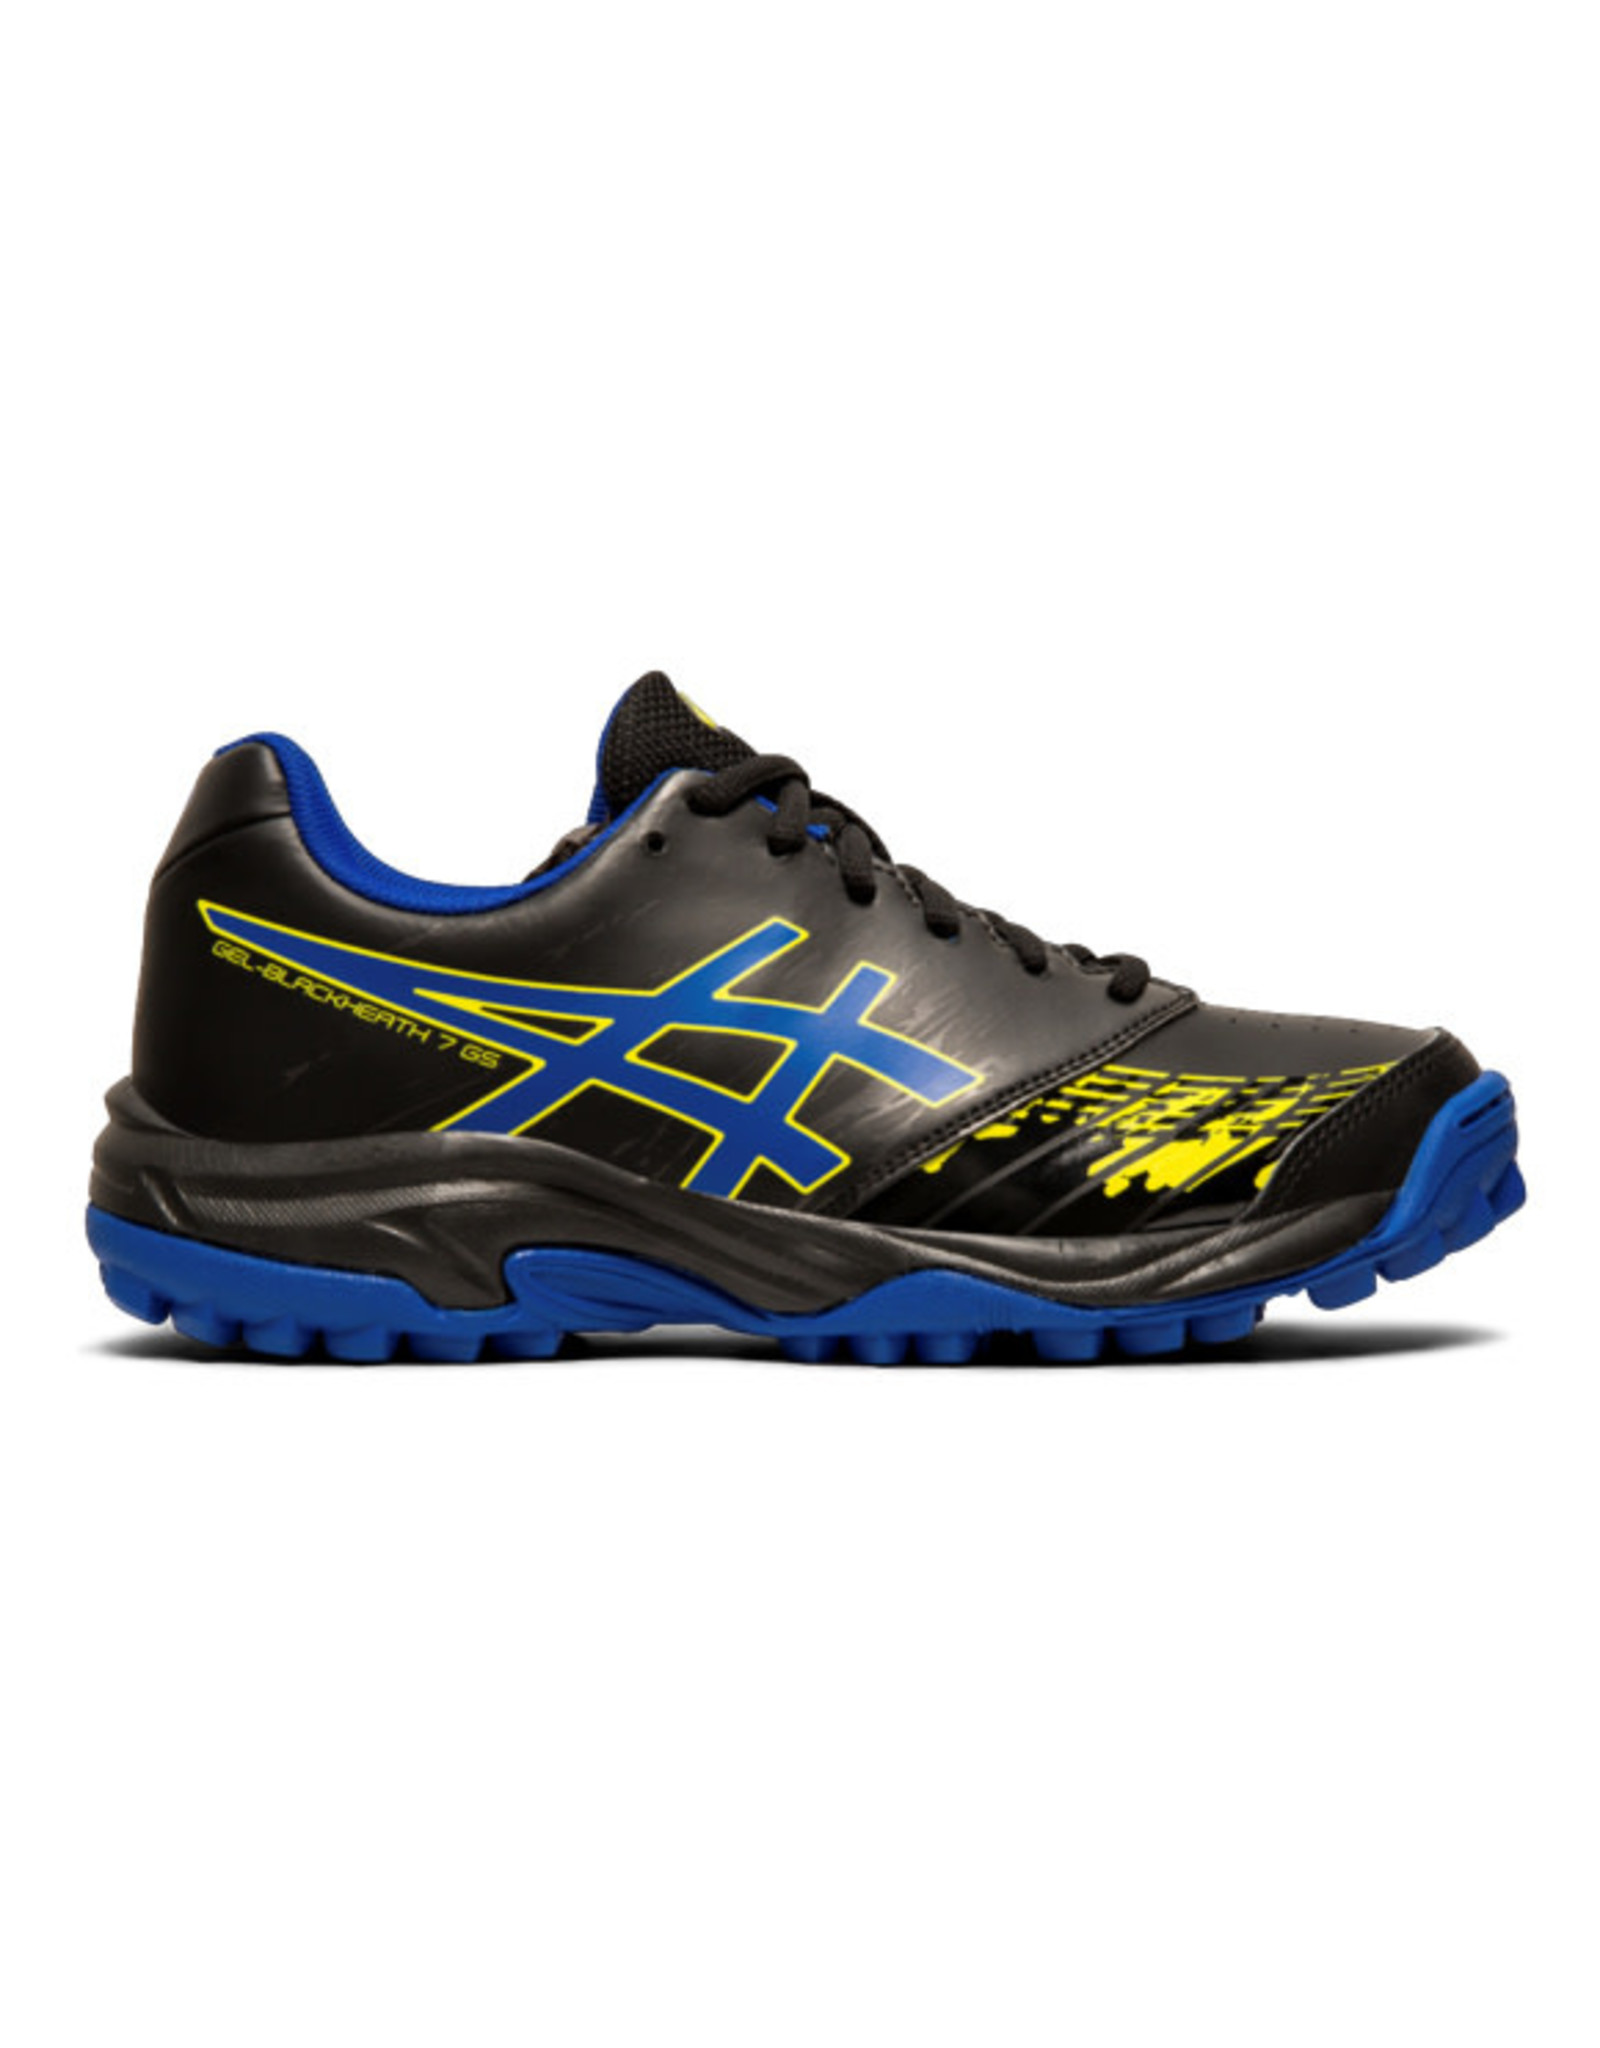 ASICS ASICS BLACKHEAT 7GS KIDS BLACK-ASICS BLUE 19-20